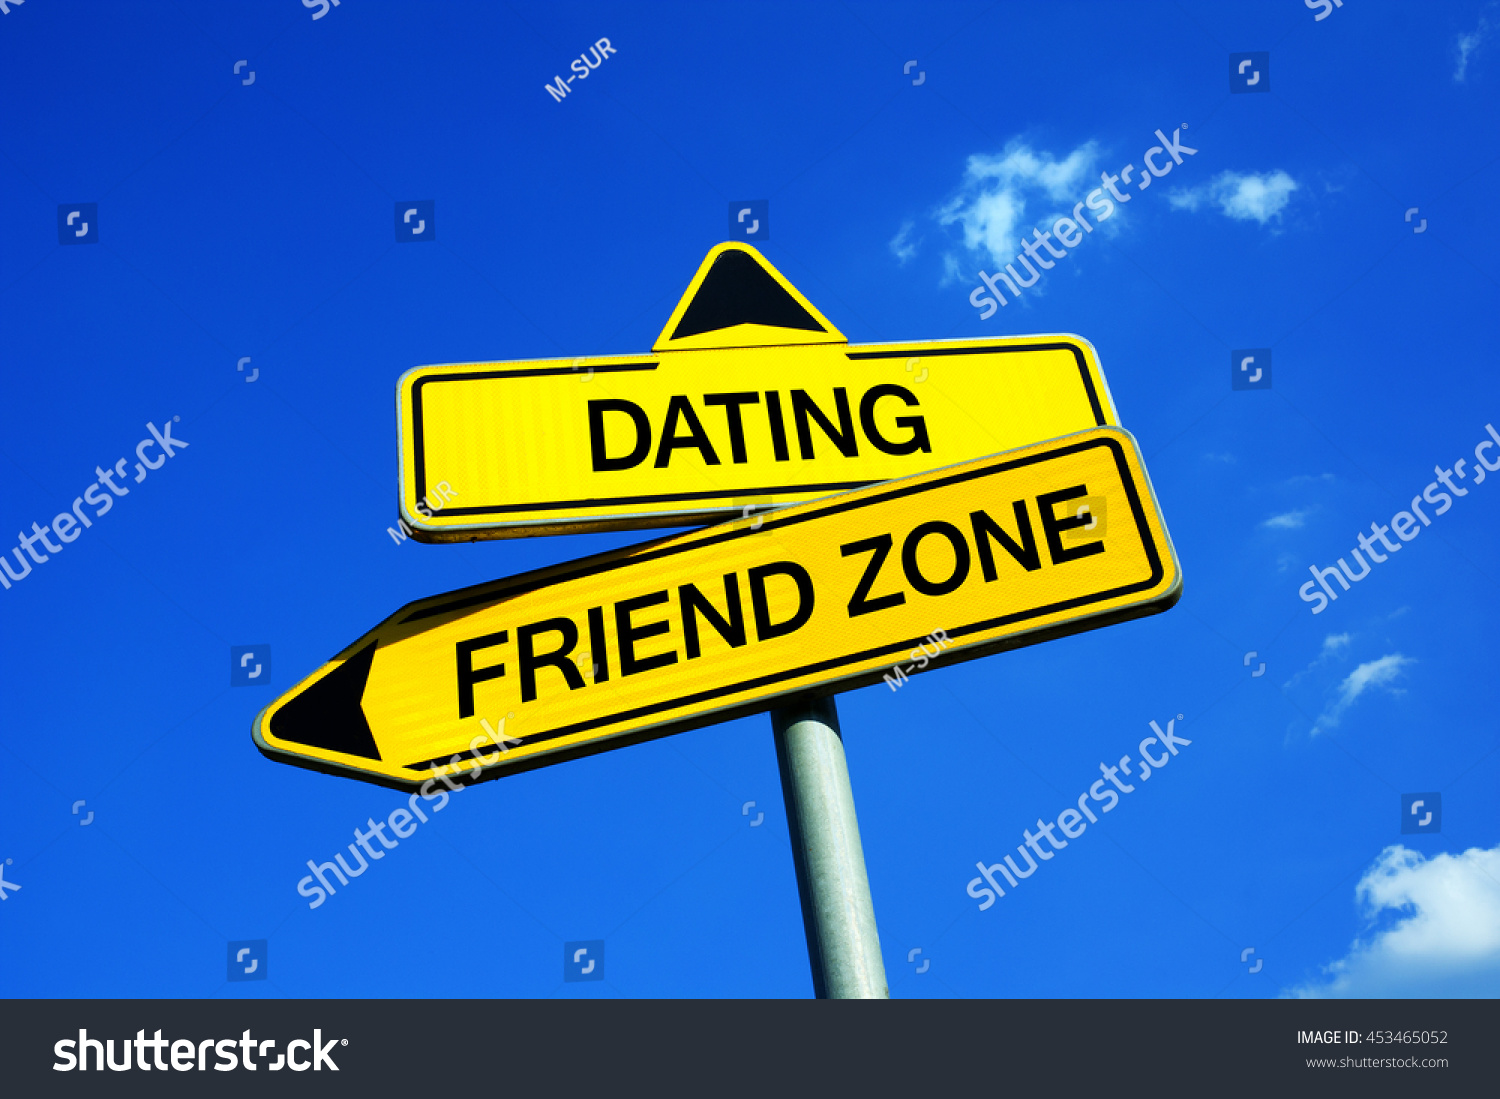 free dating zone